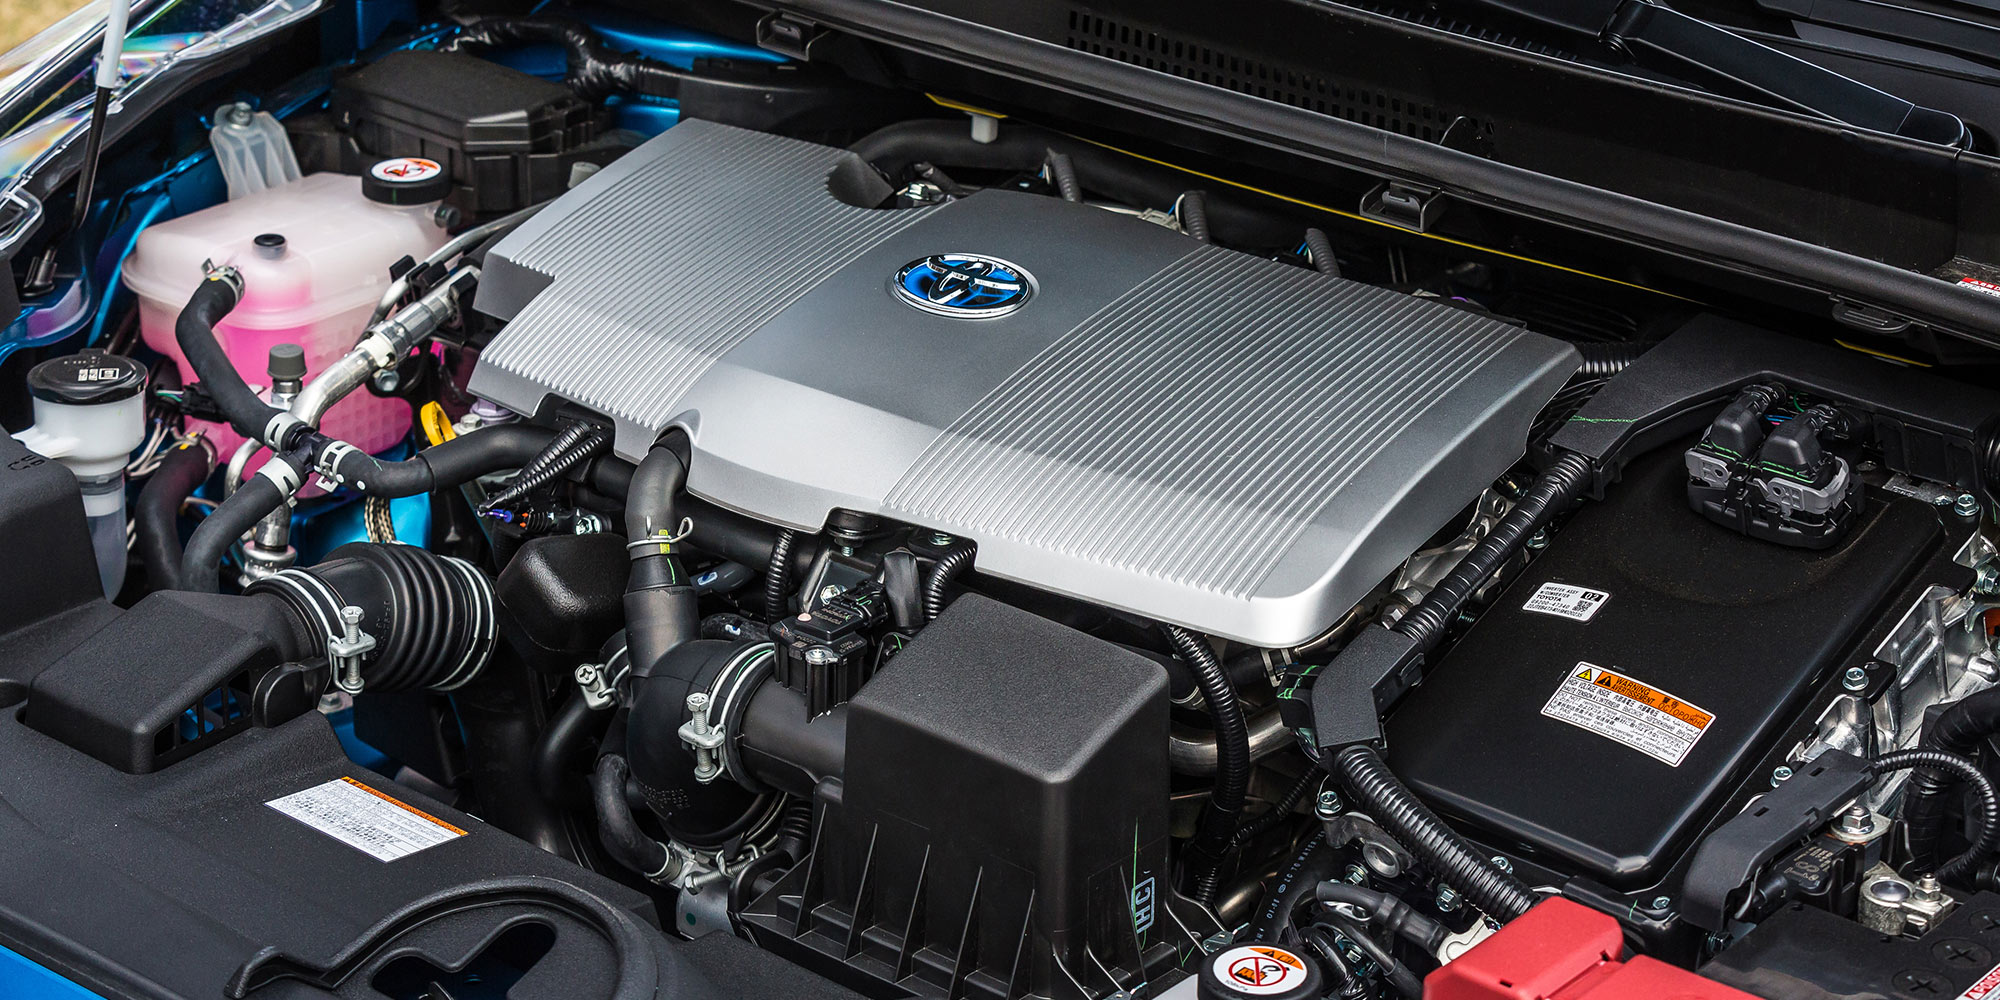 Under the hood of the Toyota Prius